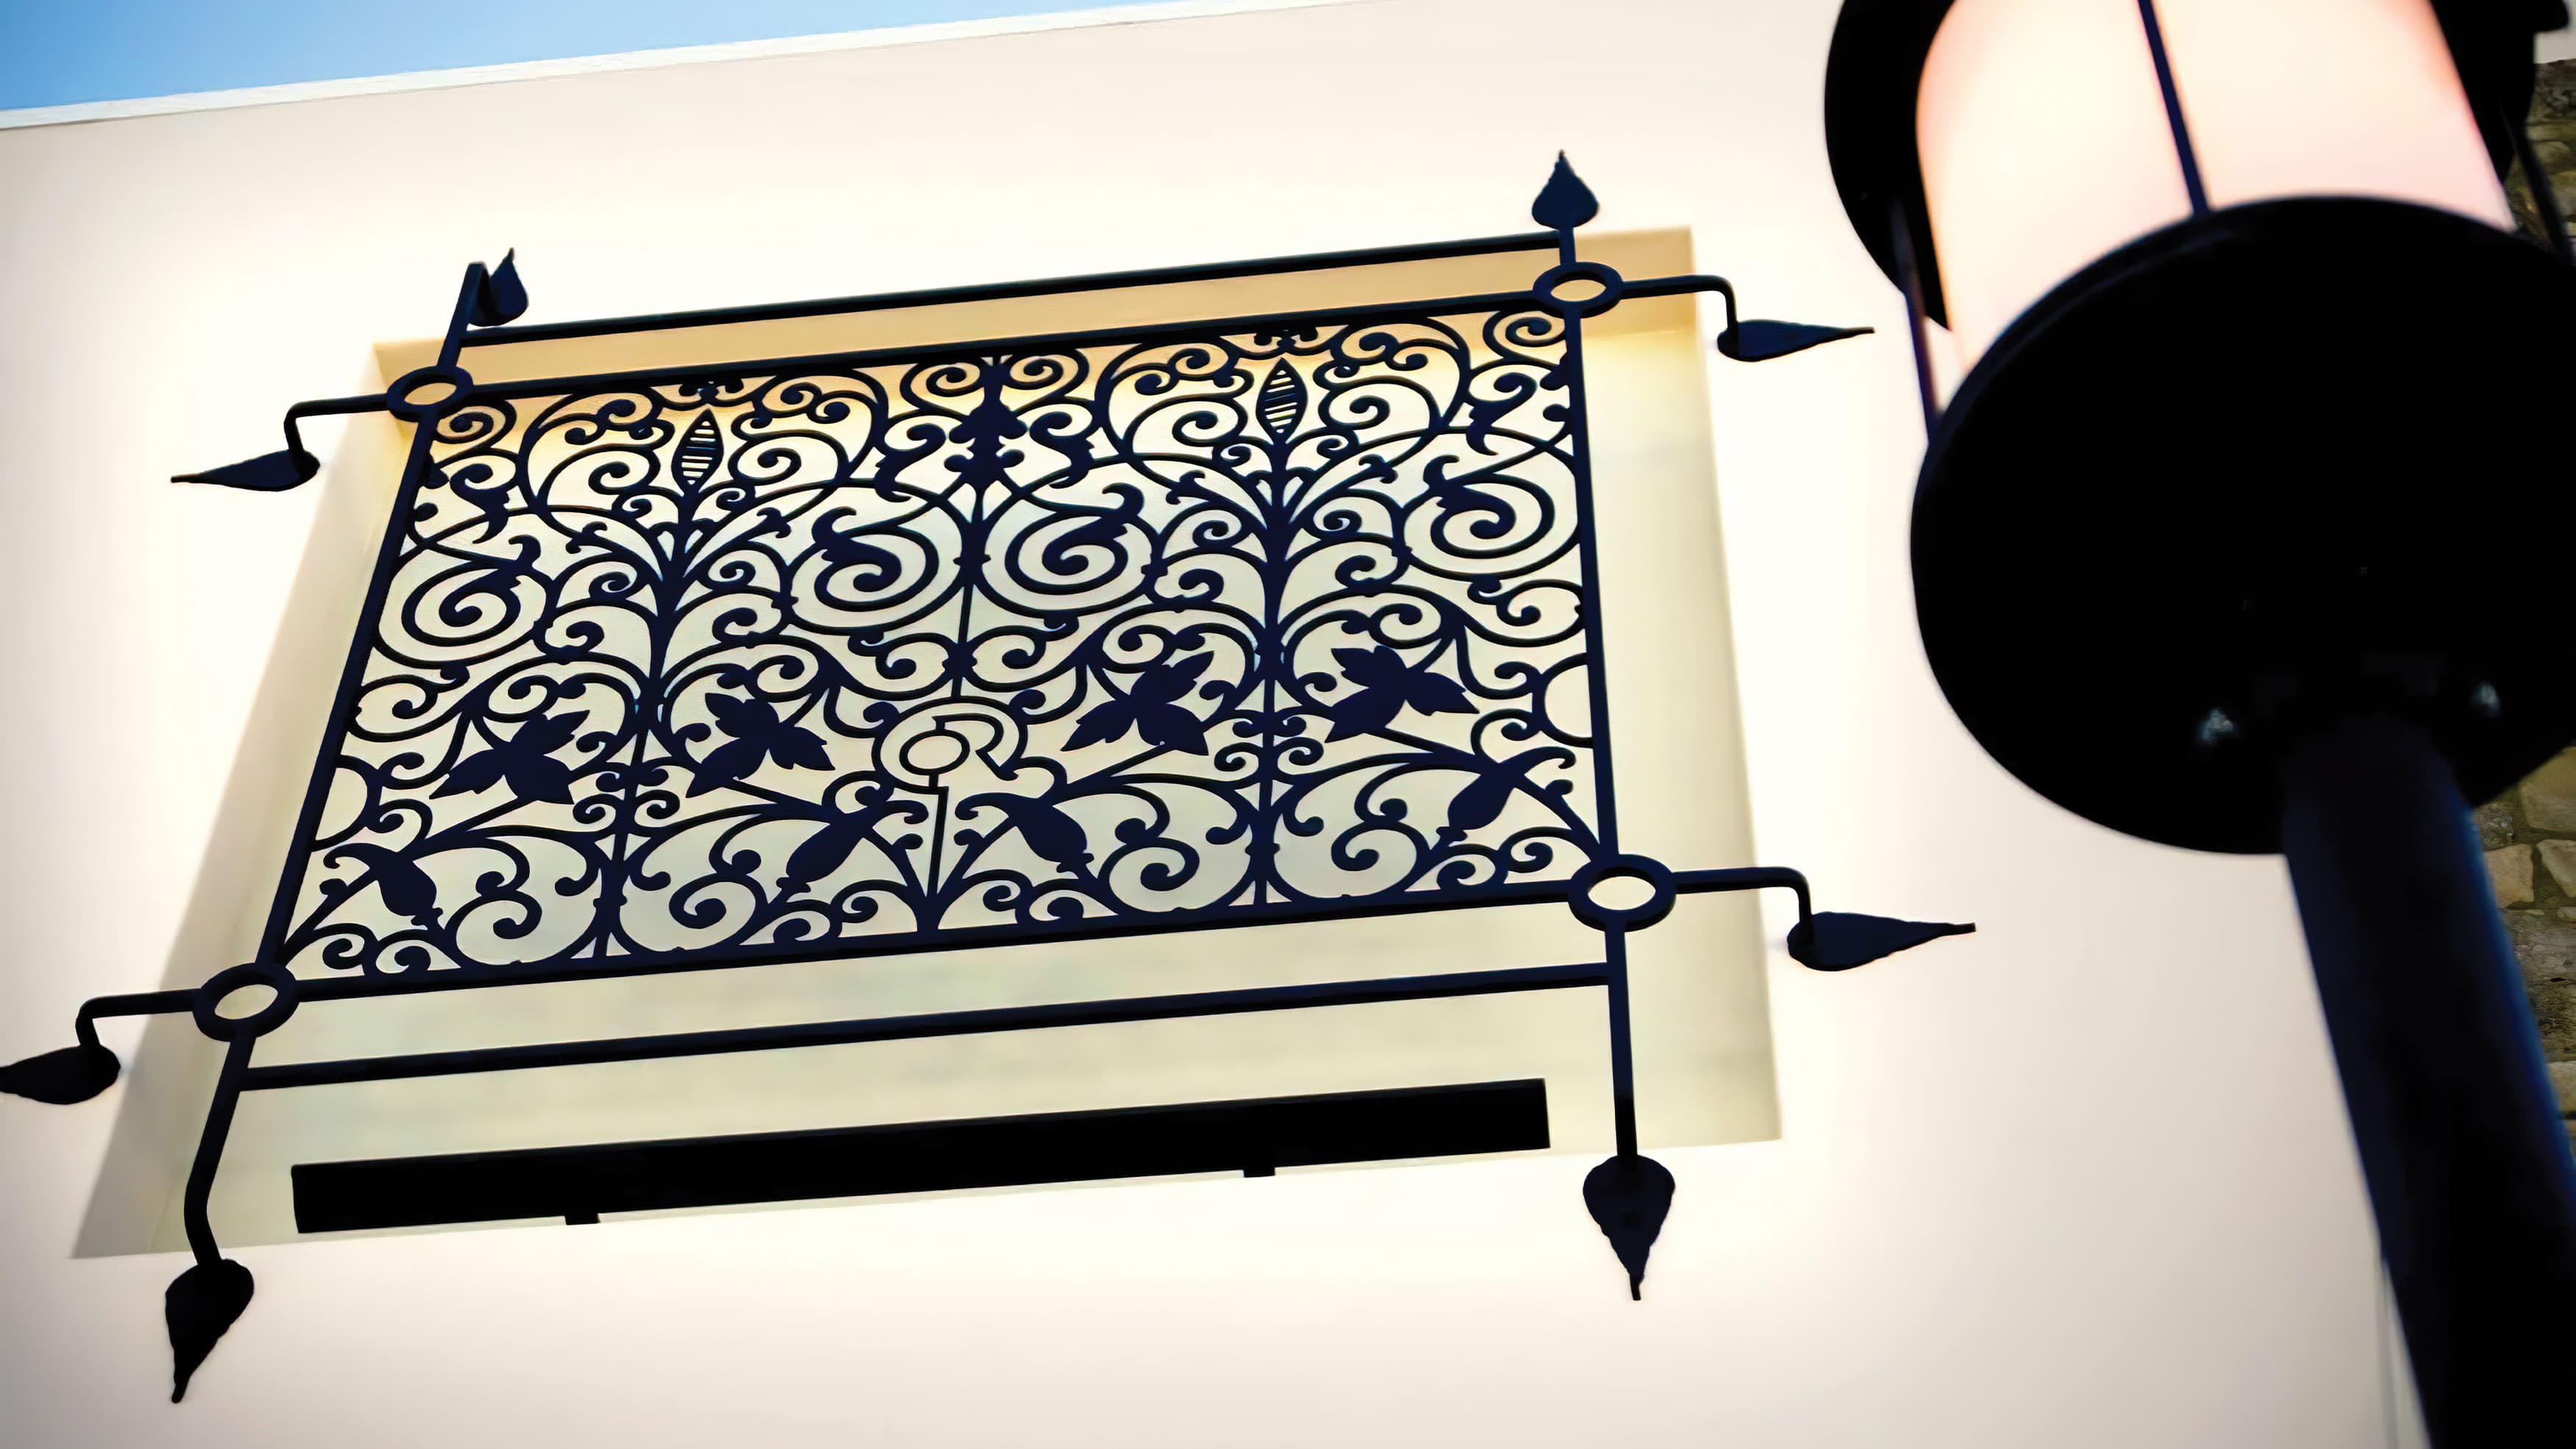 A patterned architectural grille feature, a piece of the public art program by RSM Design